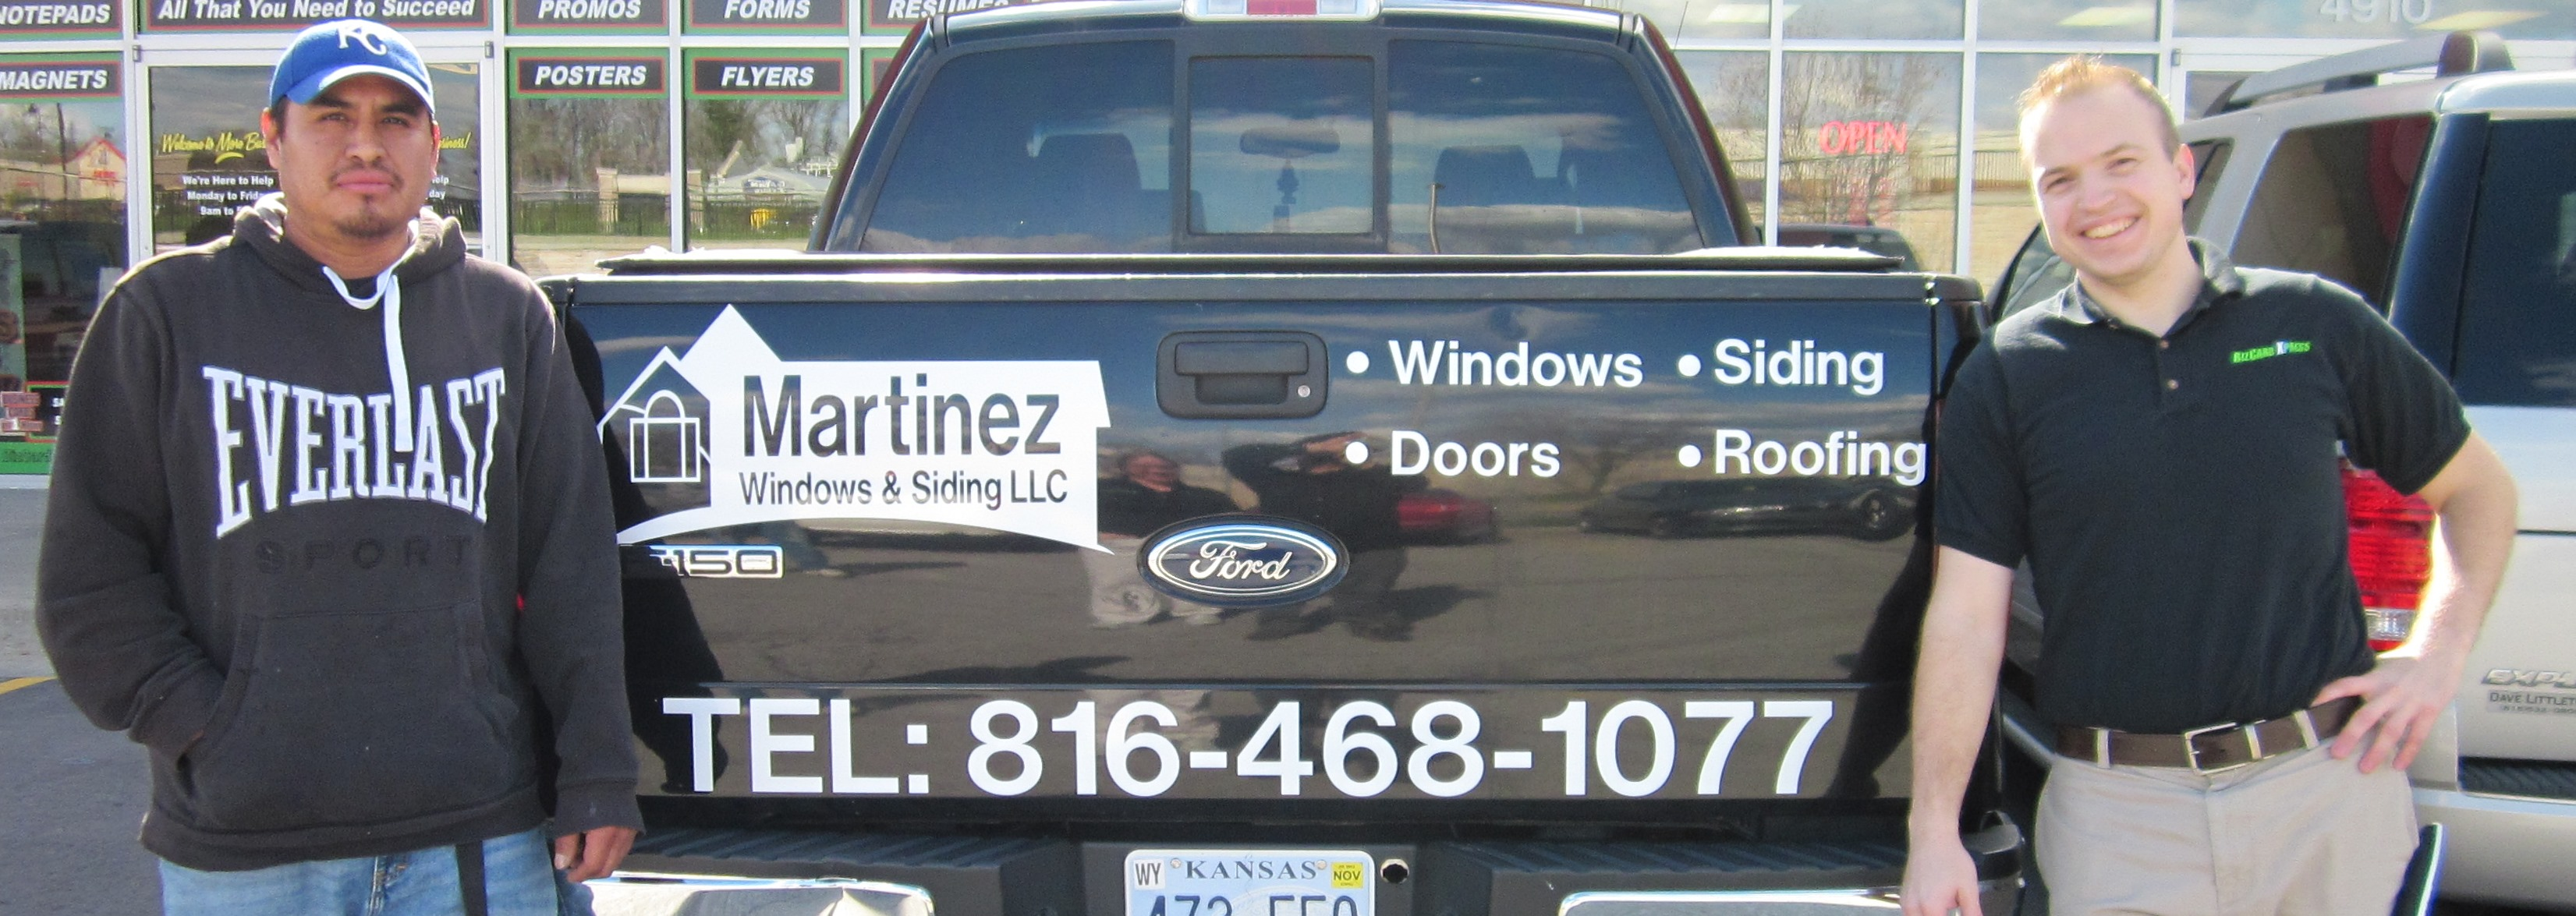 Car Decals Business Cards Kansas City - Vehicle decals for business application